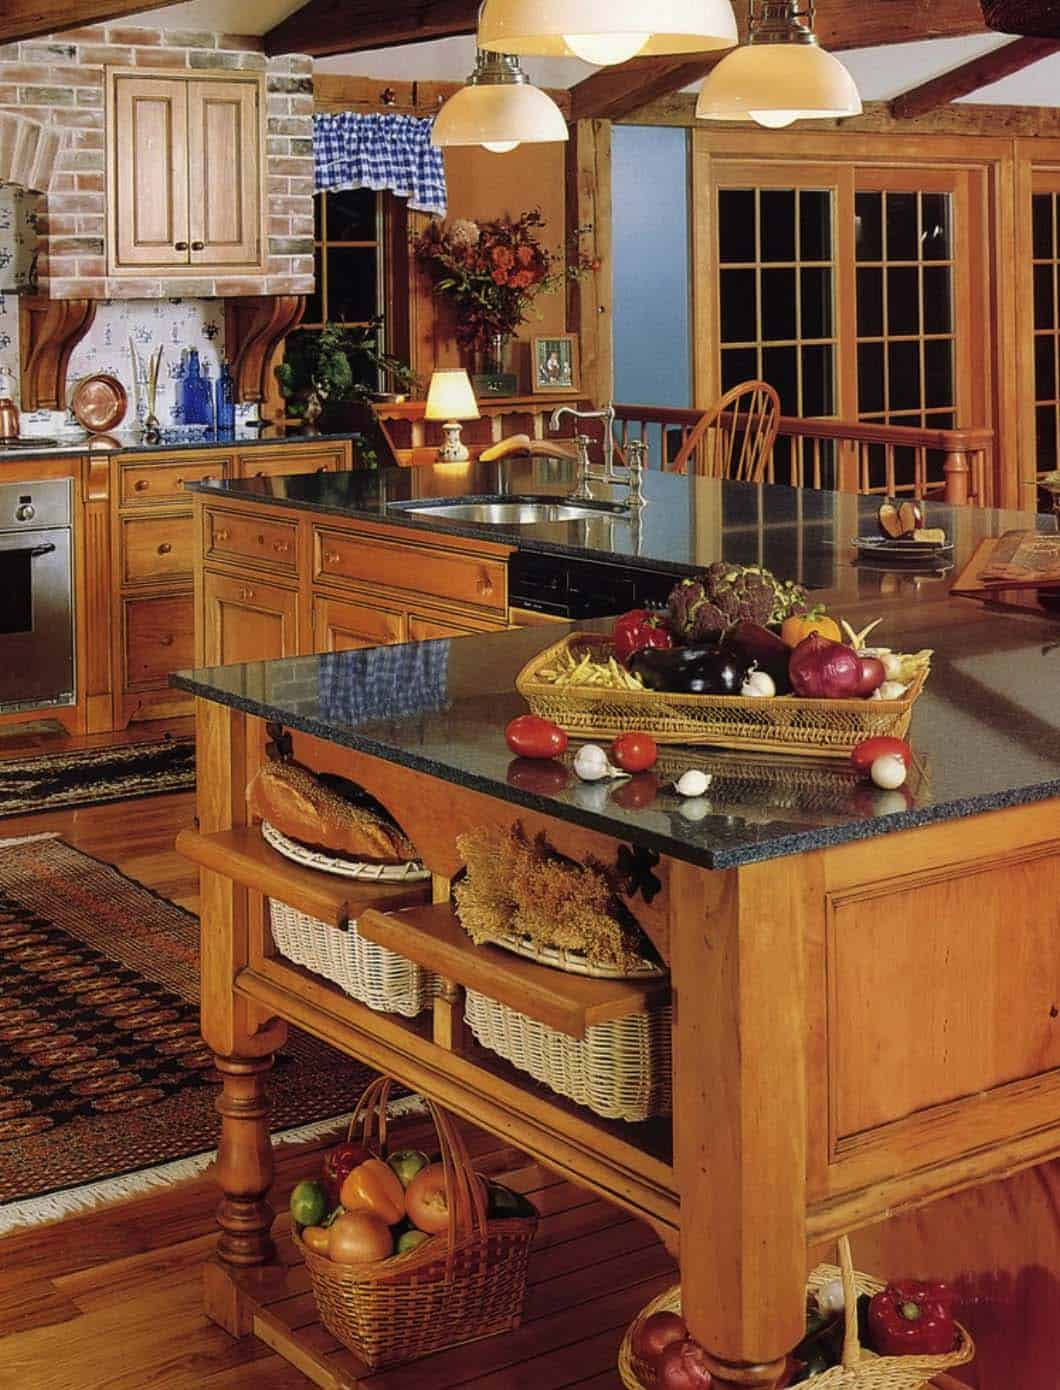 breathtaking country chic kitchen | 33 Amazing country-chic kitchens brimming with character